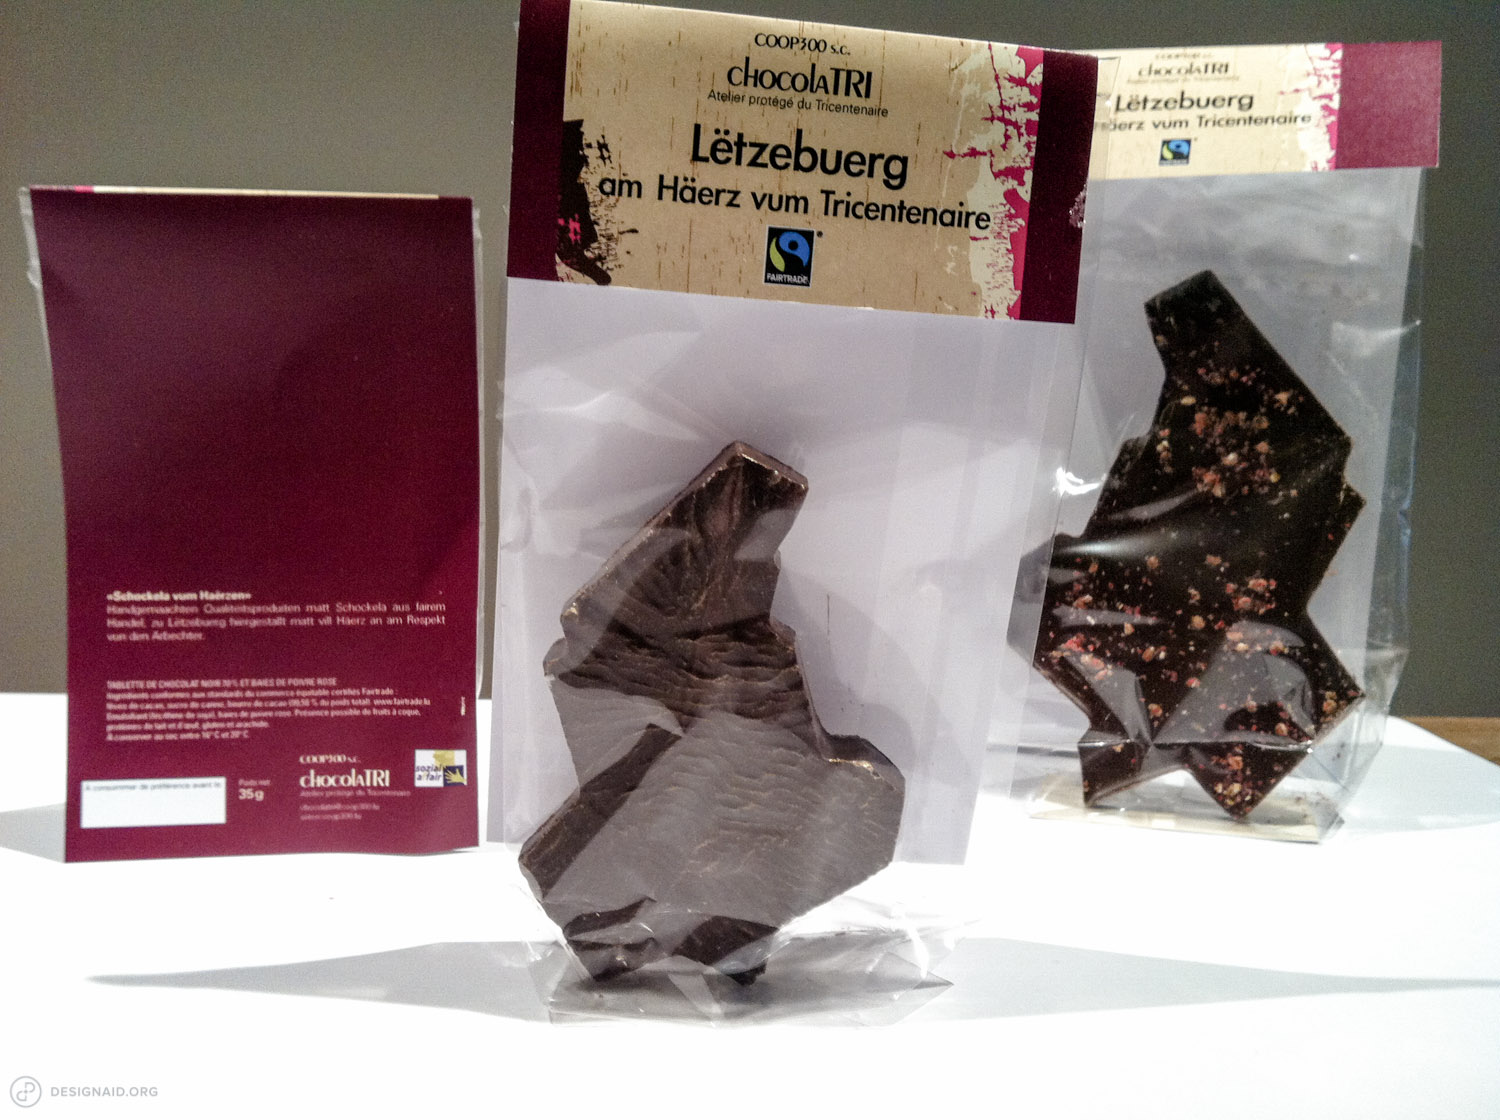 One of the results of our collaboration was the topographical map of Luxembourg, cast in pure dark chocolate